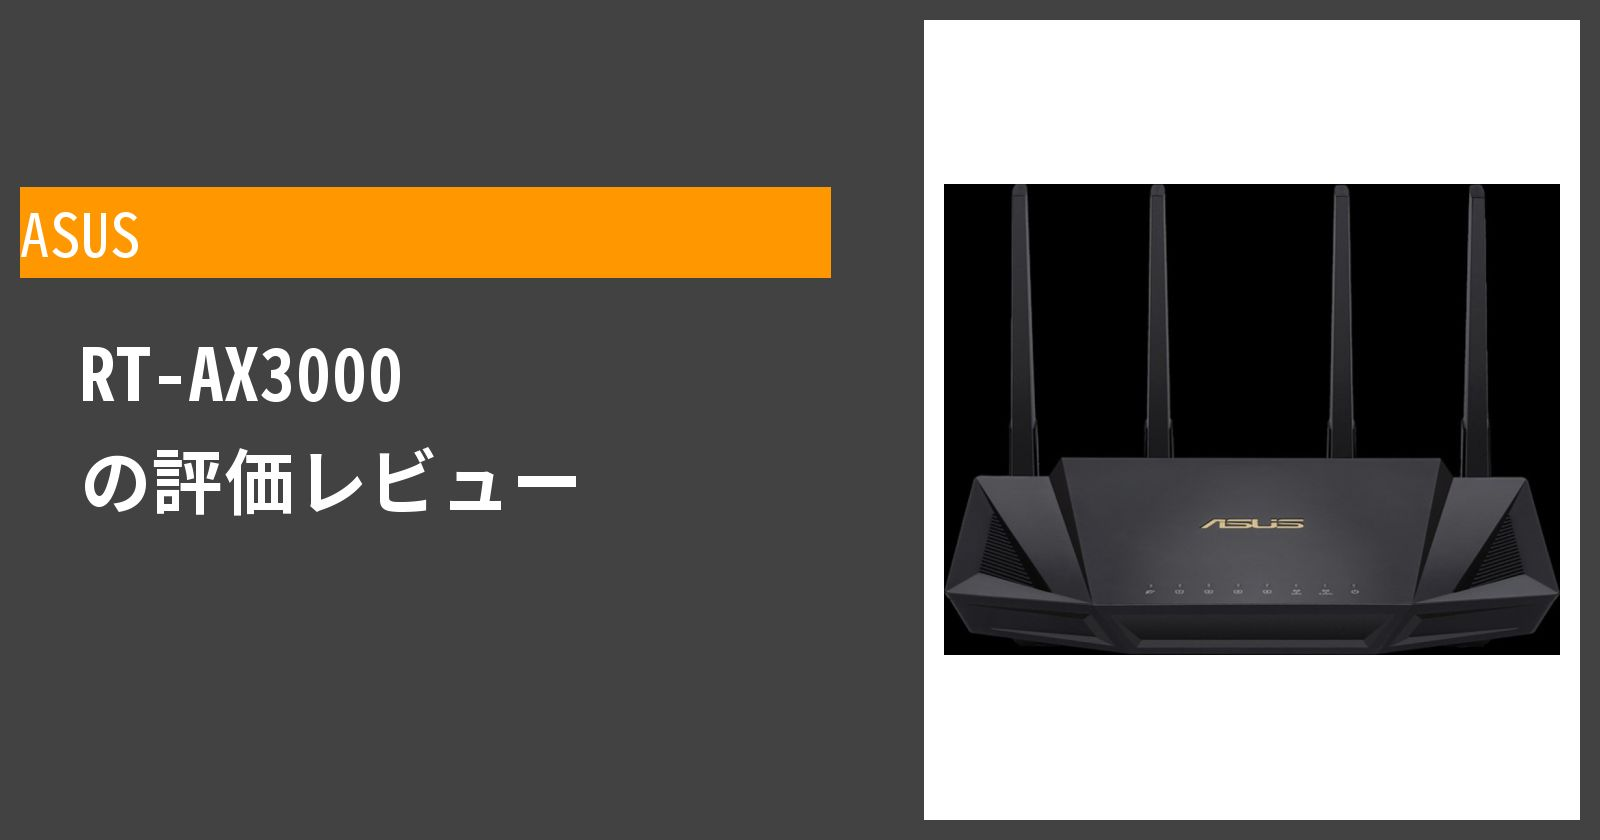 RT-AX3000を徹底評価